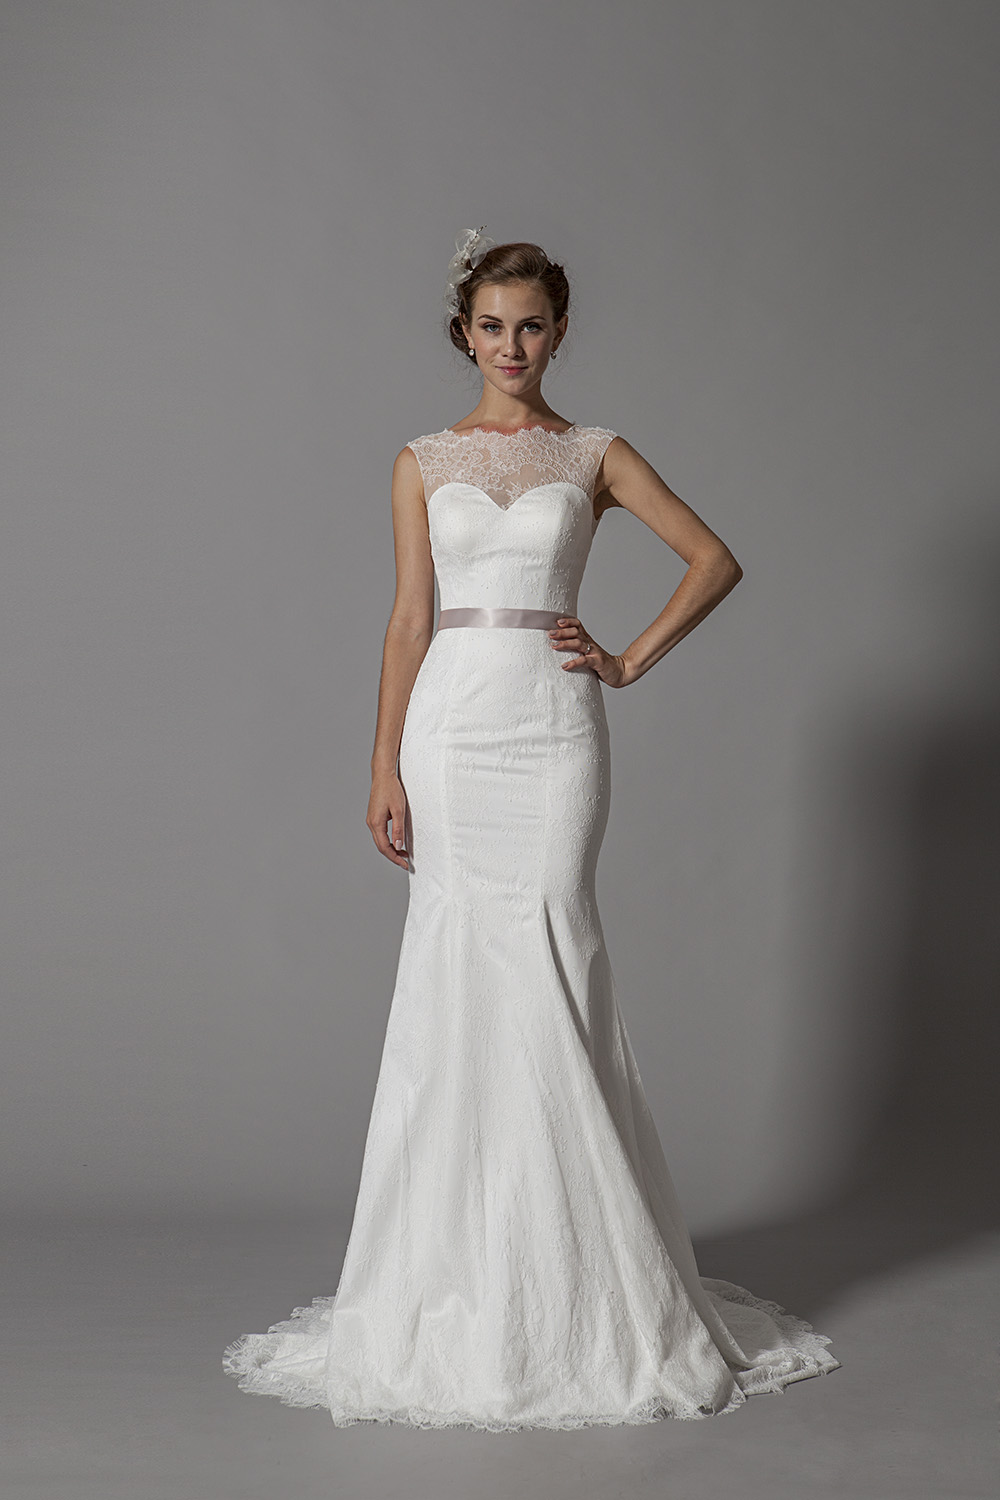 Petite wedding dresses scotland discount wedding dresses for Brand name wedding dresses